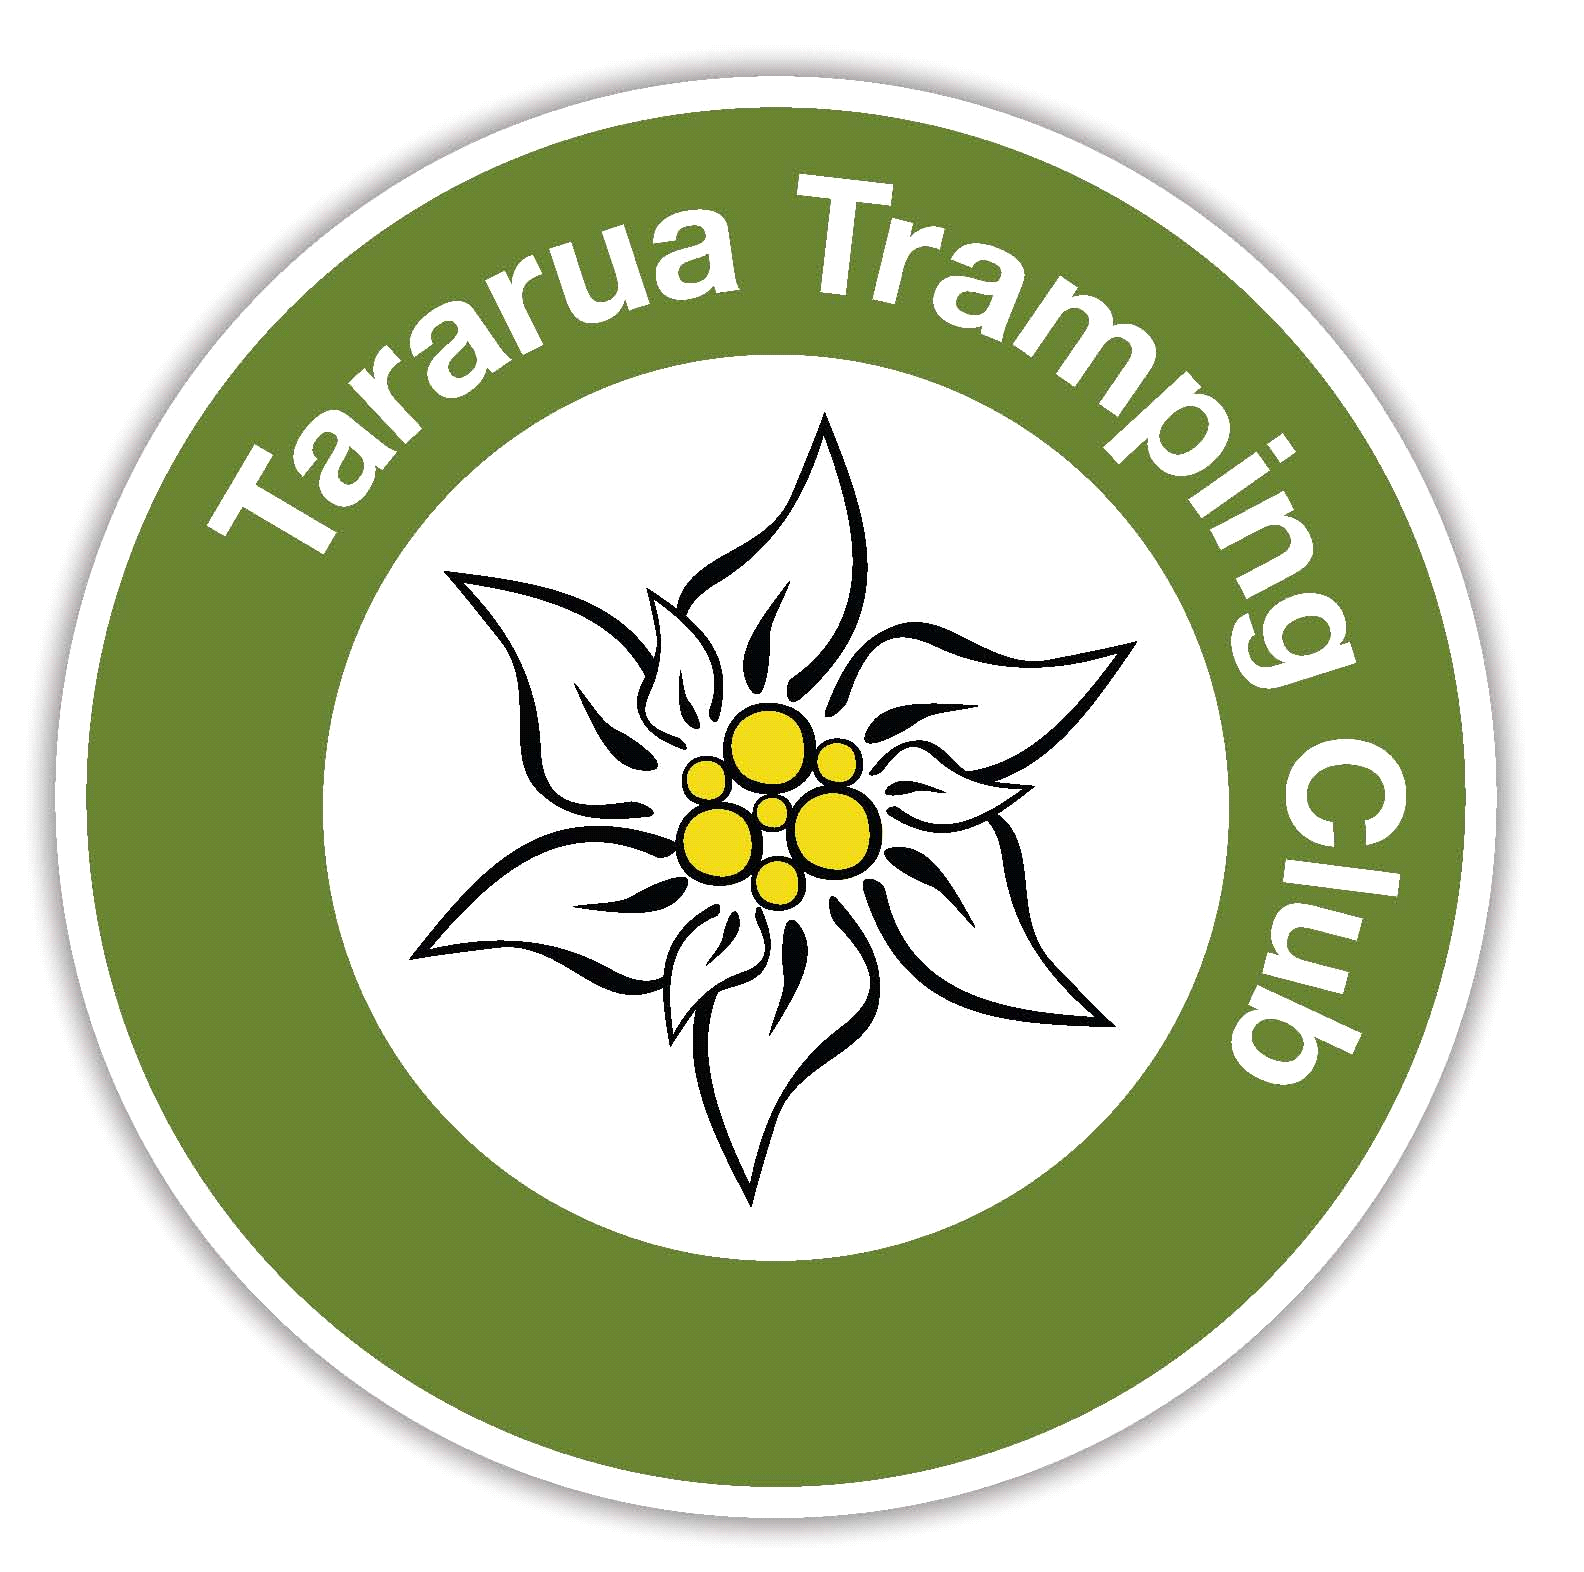 Option 2a Stylised Edelweiss flower stamp logo